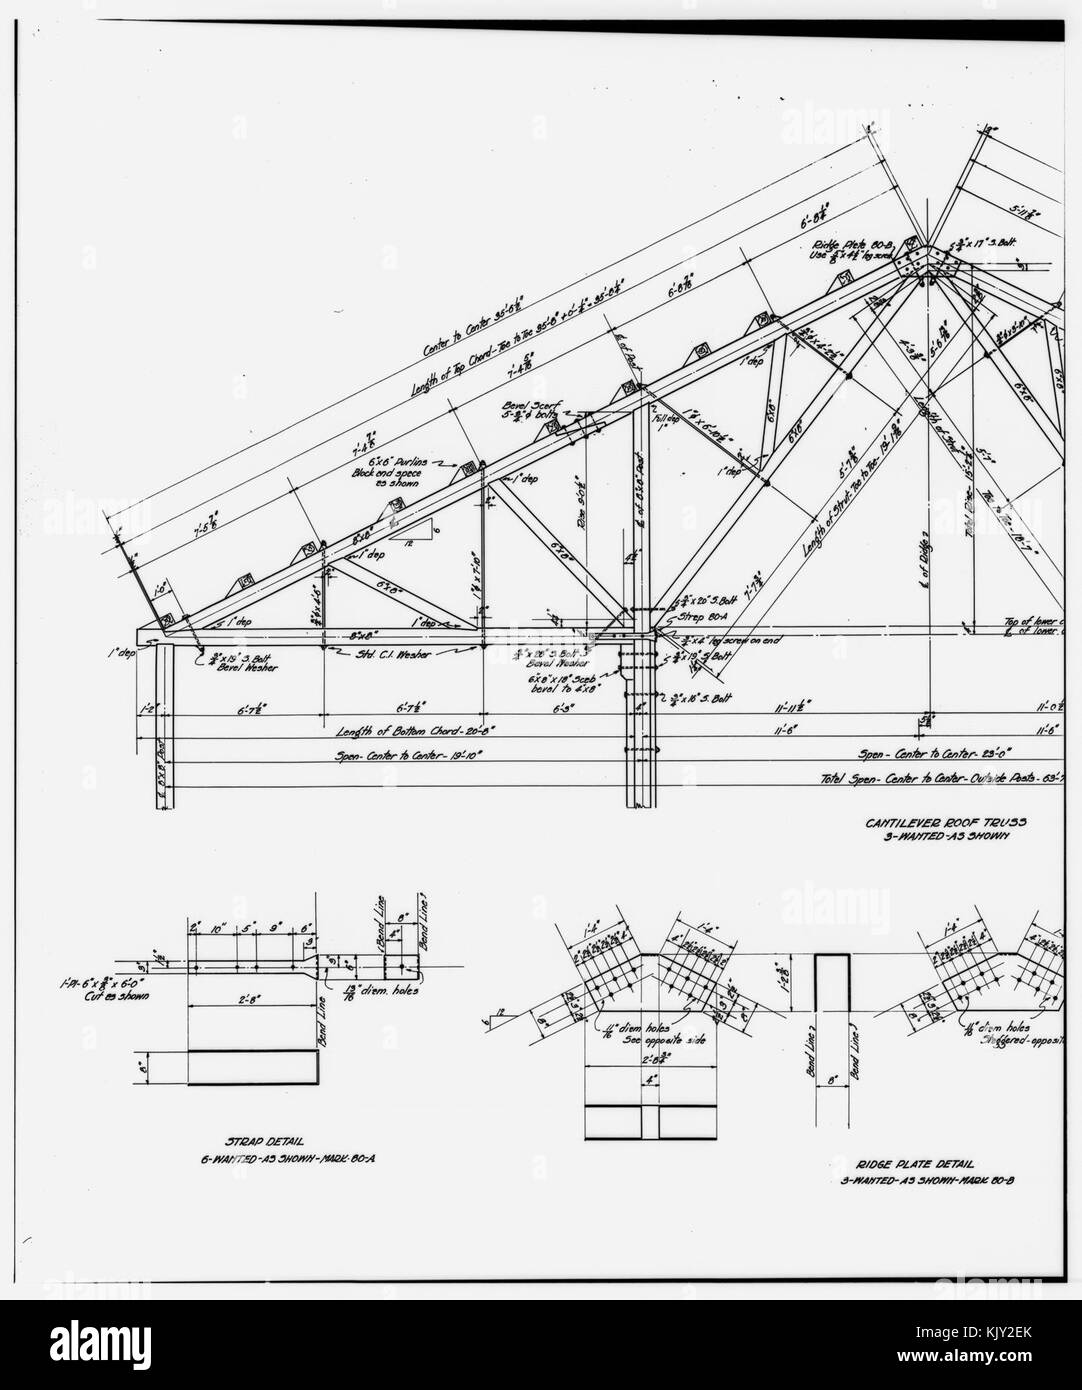 52  PHOTOCOPY OF DRAWING AMMONIA LEACHING PLANT ROOF TRUSS